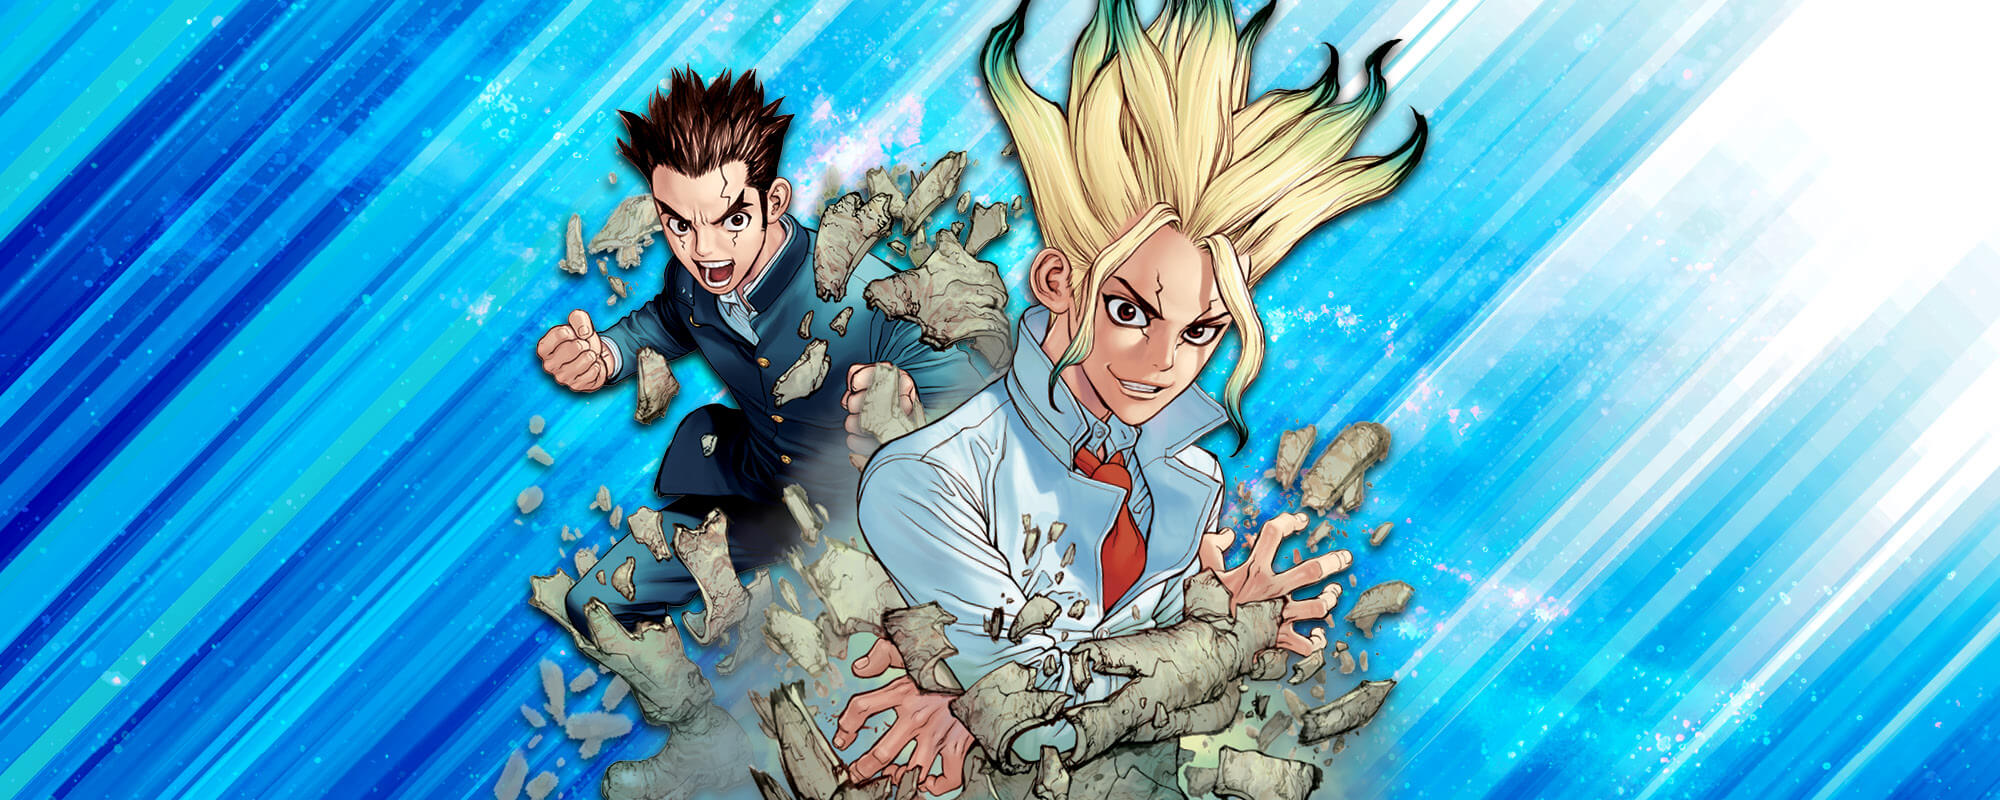 Dr. Stone Episode 8 Subtitle Indonesia - Animebatch.id